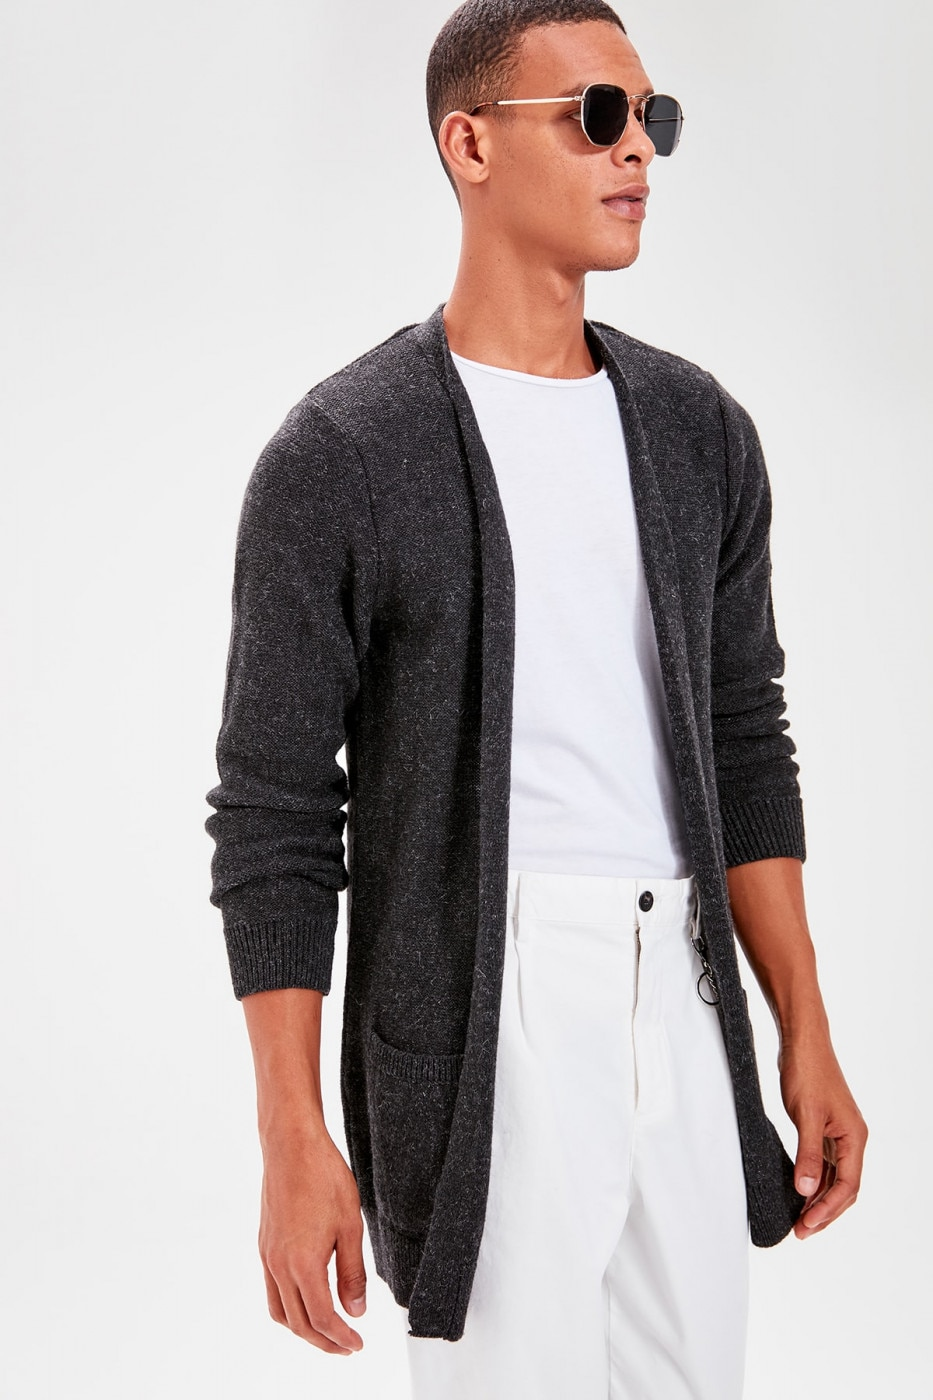 Trendyol Anthracite Men's Long Cardigan